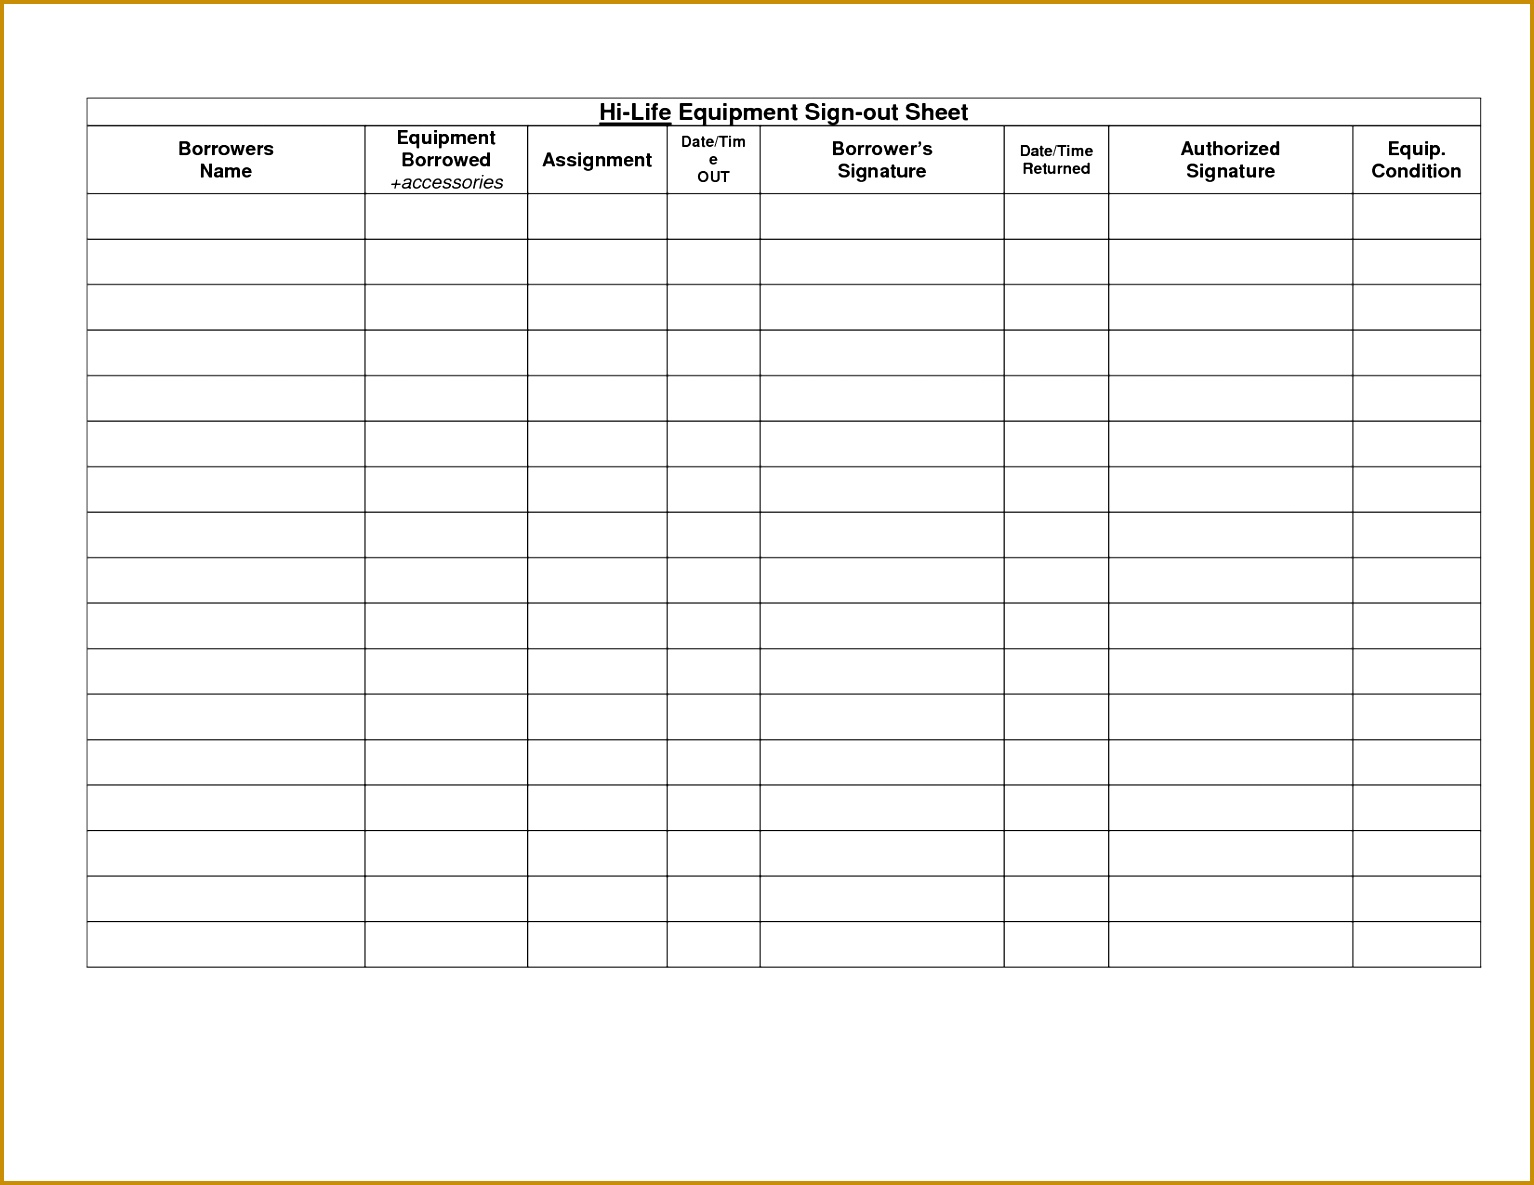 Sign In Out Sheet Template Stunning Sle Equipment Sign Out Sheet s Best Resume 15341185